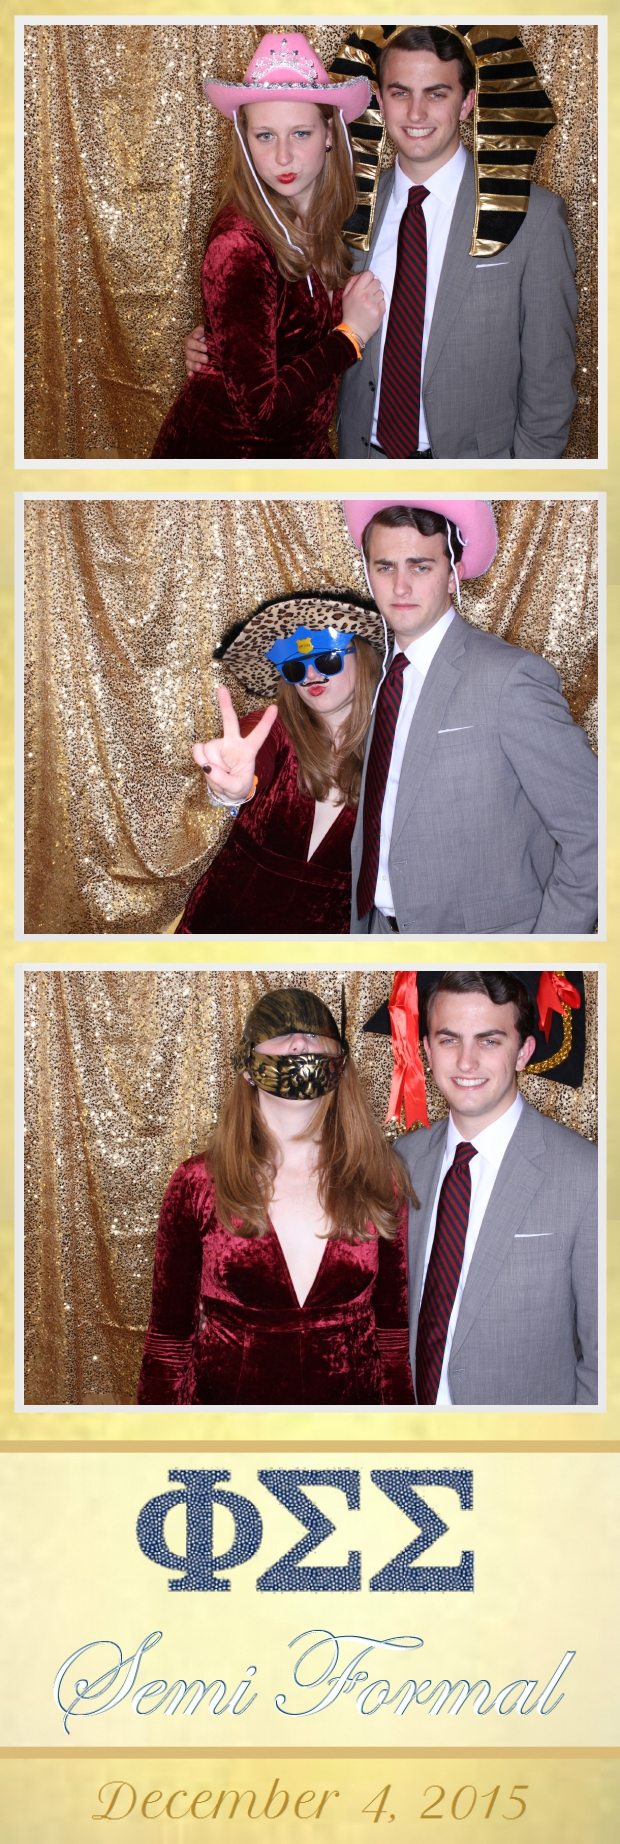 Guest House Events Photo Booth Phi Sigma Sigma Semi Formal (20).jpg